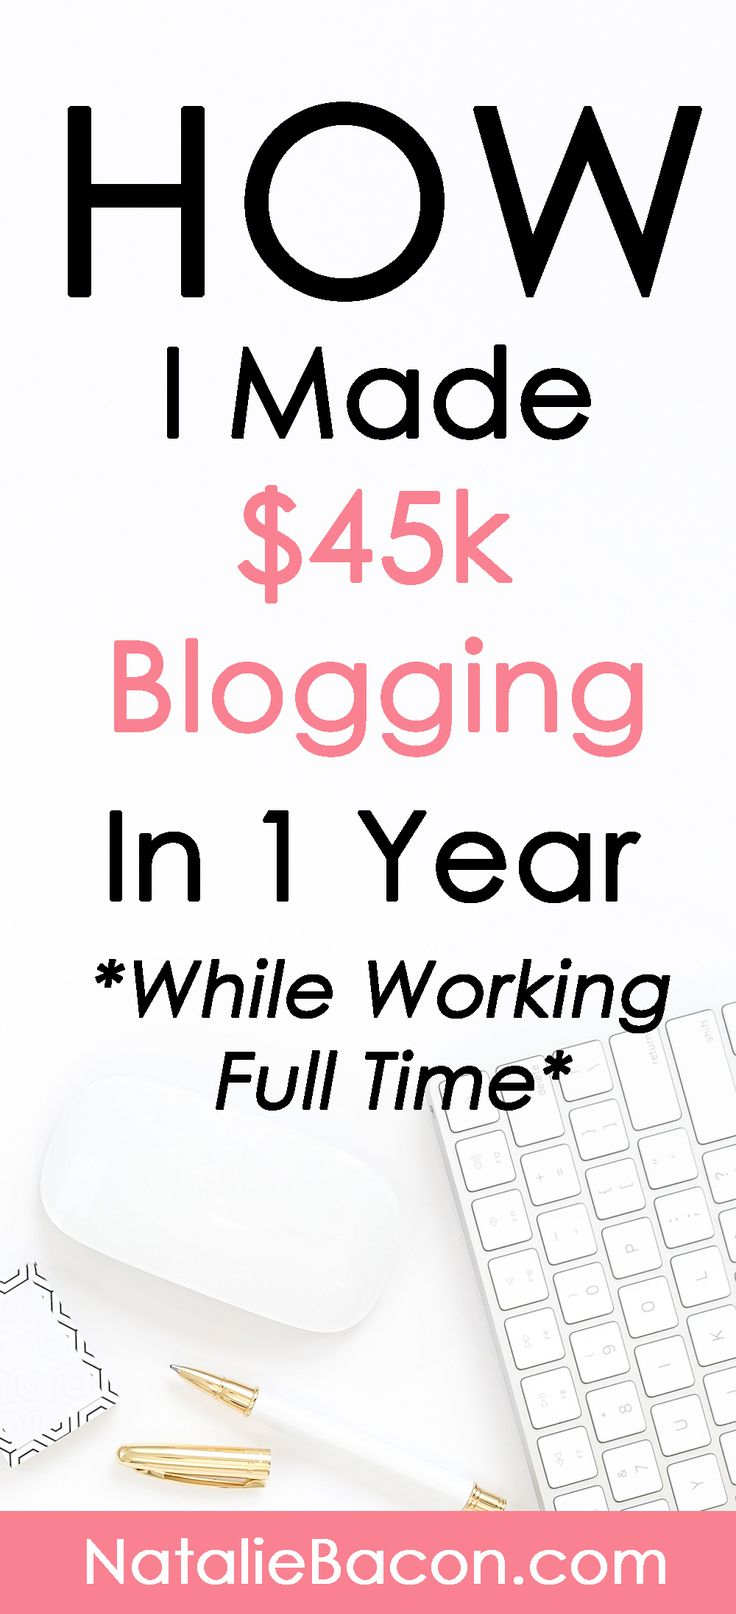 How I Made $45K Blogging In 1 Year While Working Full Time #makemoneyonline #incomereport #blogging #howtomakemoneyonline #bloggingtips #nataliebacon